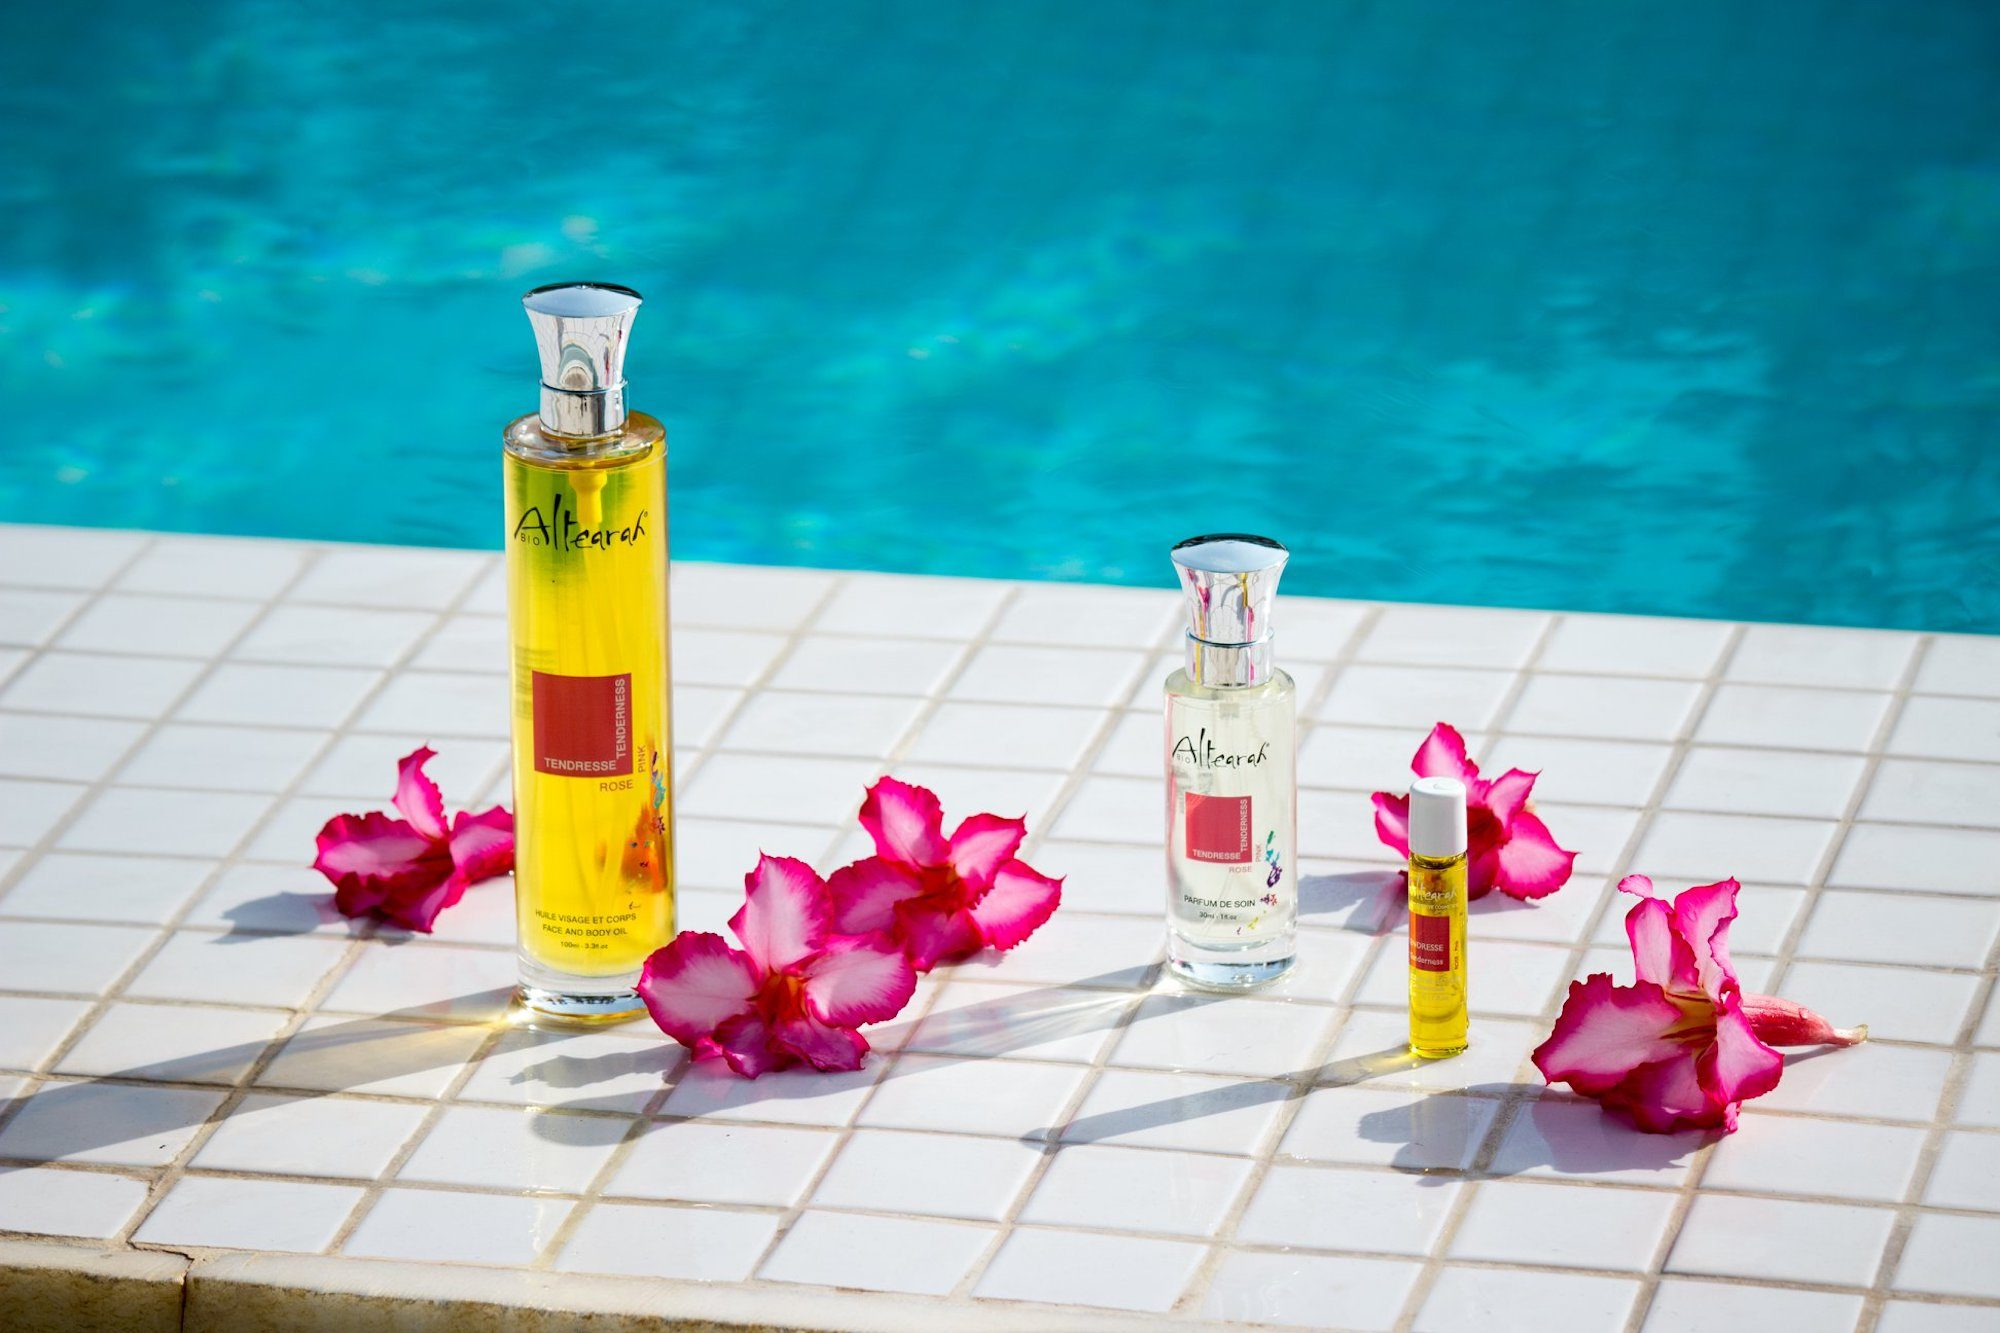 Altearah Bio organic perfume bottles standing by the side of a turquoise pool and among pink flowers.